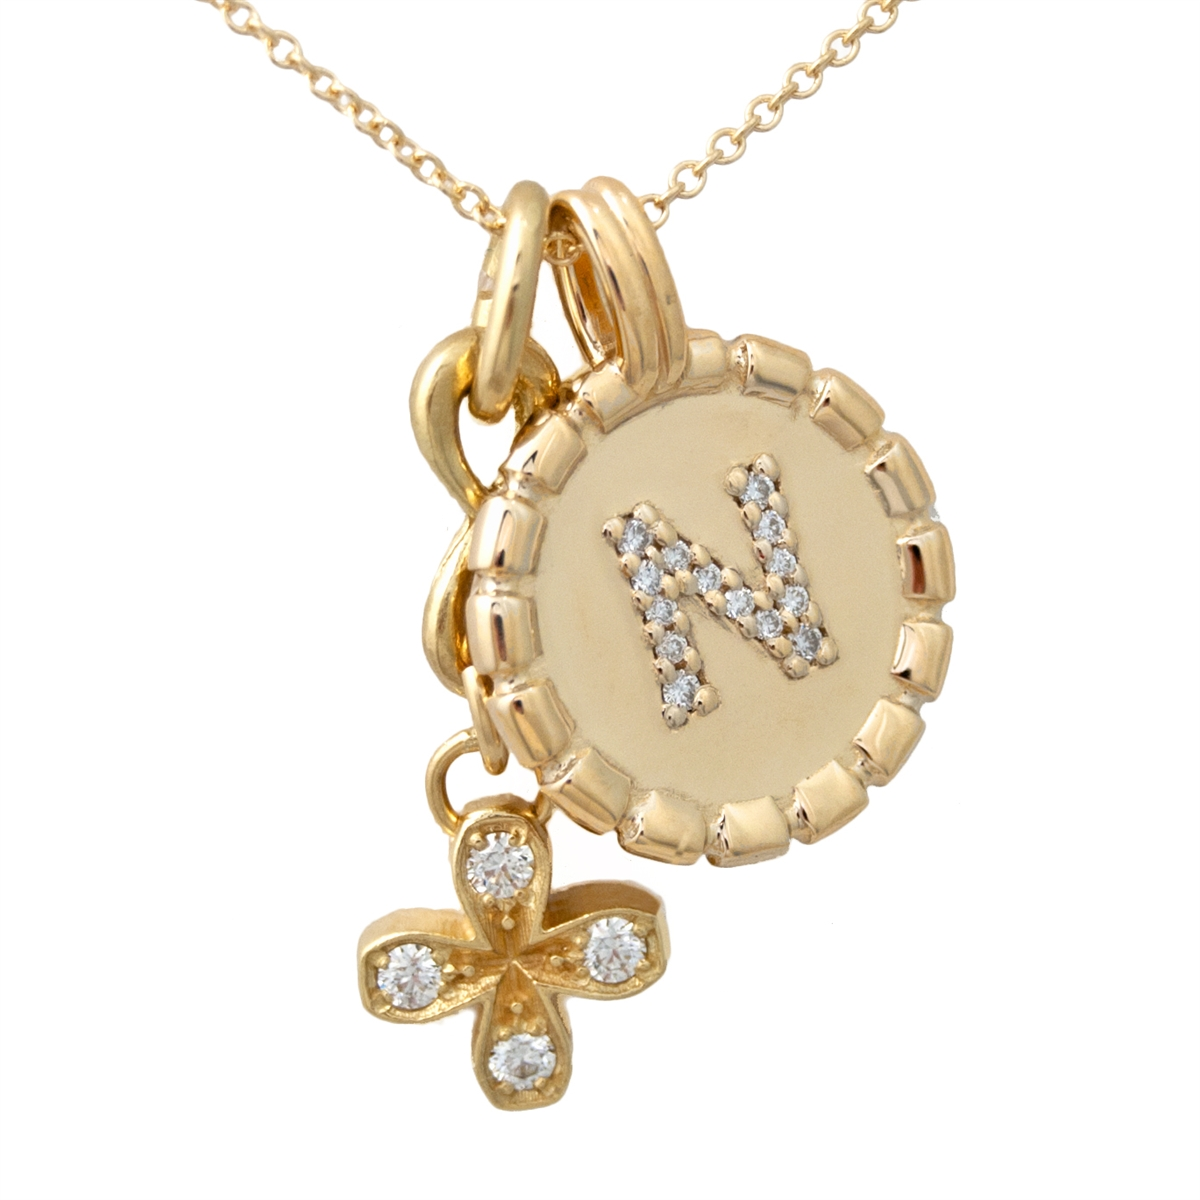 J briggs co letter medallion necklace gold and diamonds letter medallion necklace aloadofball Choice Image